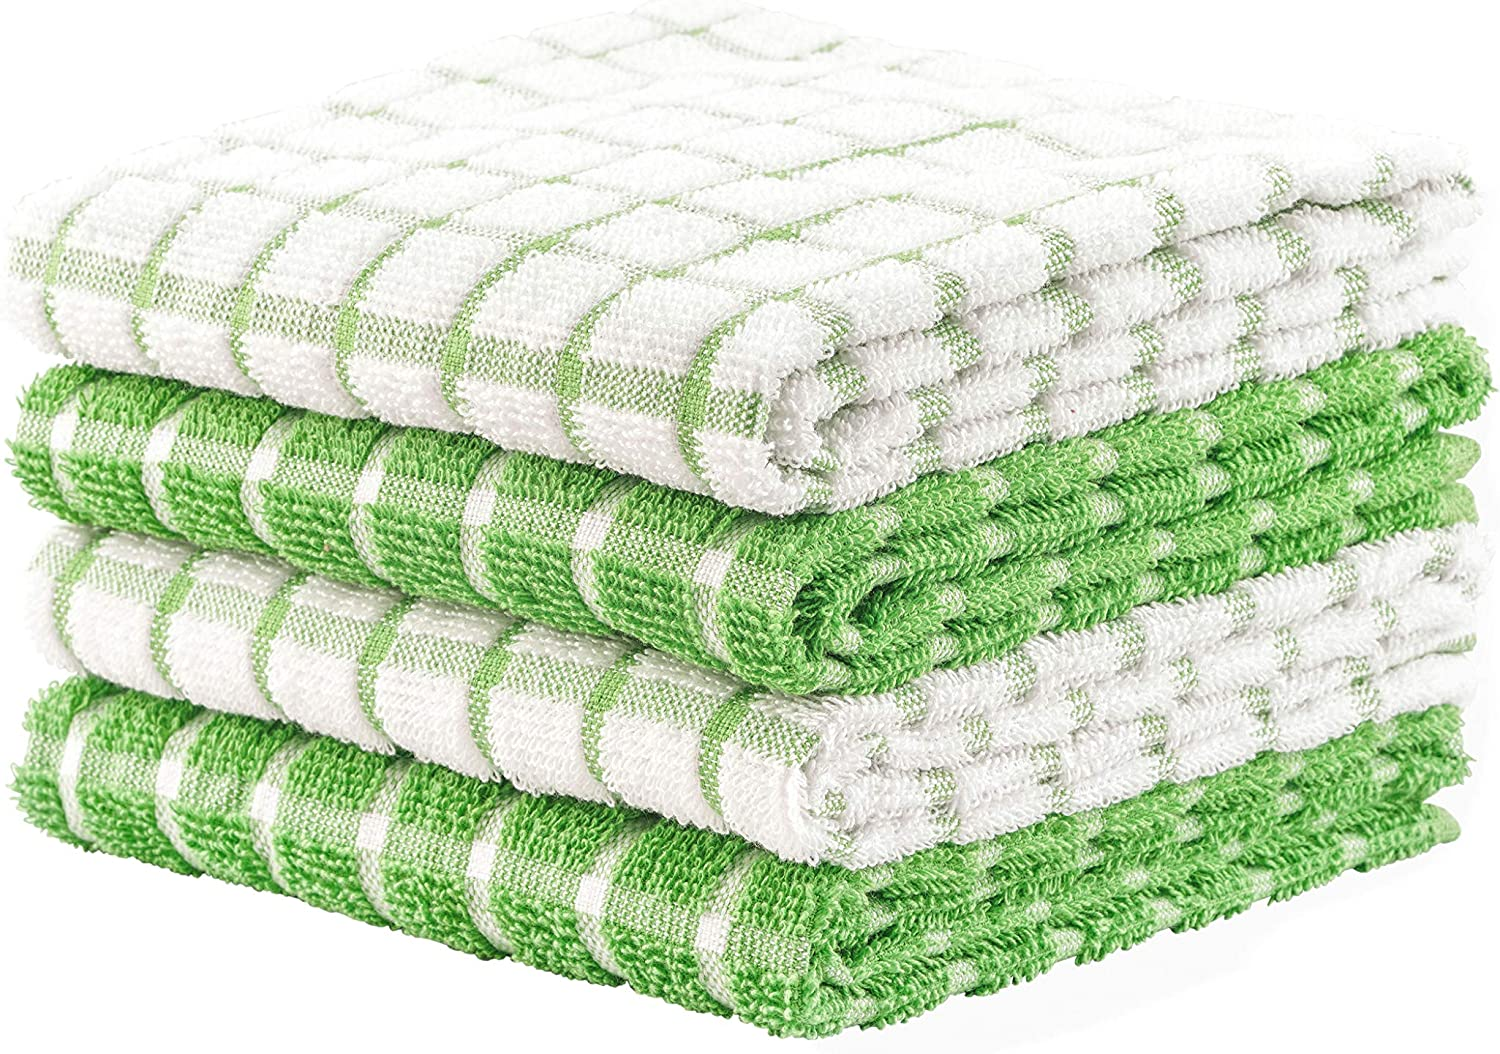 DAILY HOME ESSENTIALS - 4 Pack Cotton Terry Kitchen Dish Towel Set (16x26 Inches - Green, Checked Design) |Super Soft and Highly Absorbent|Perfect for Everyday Household & Commercial Use